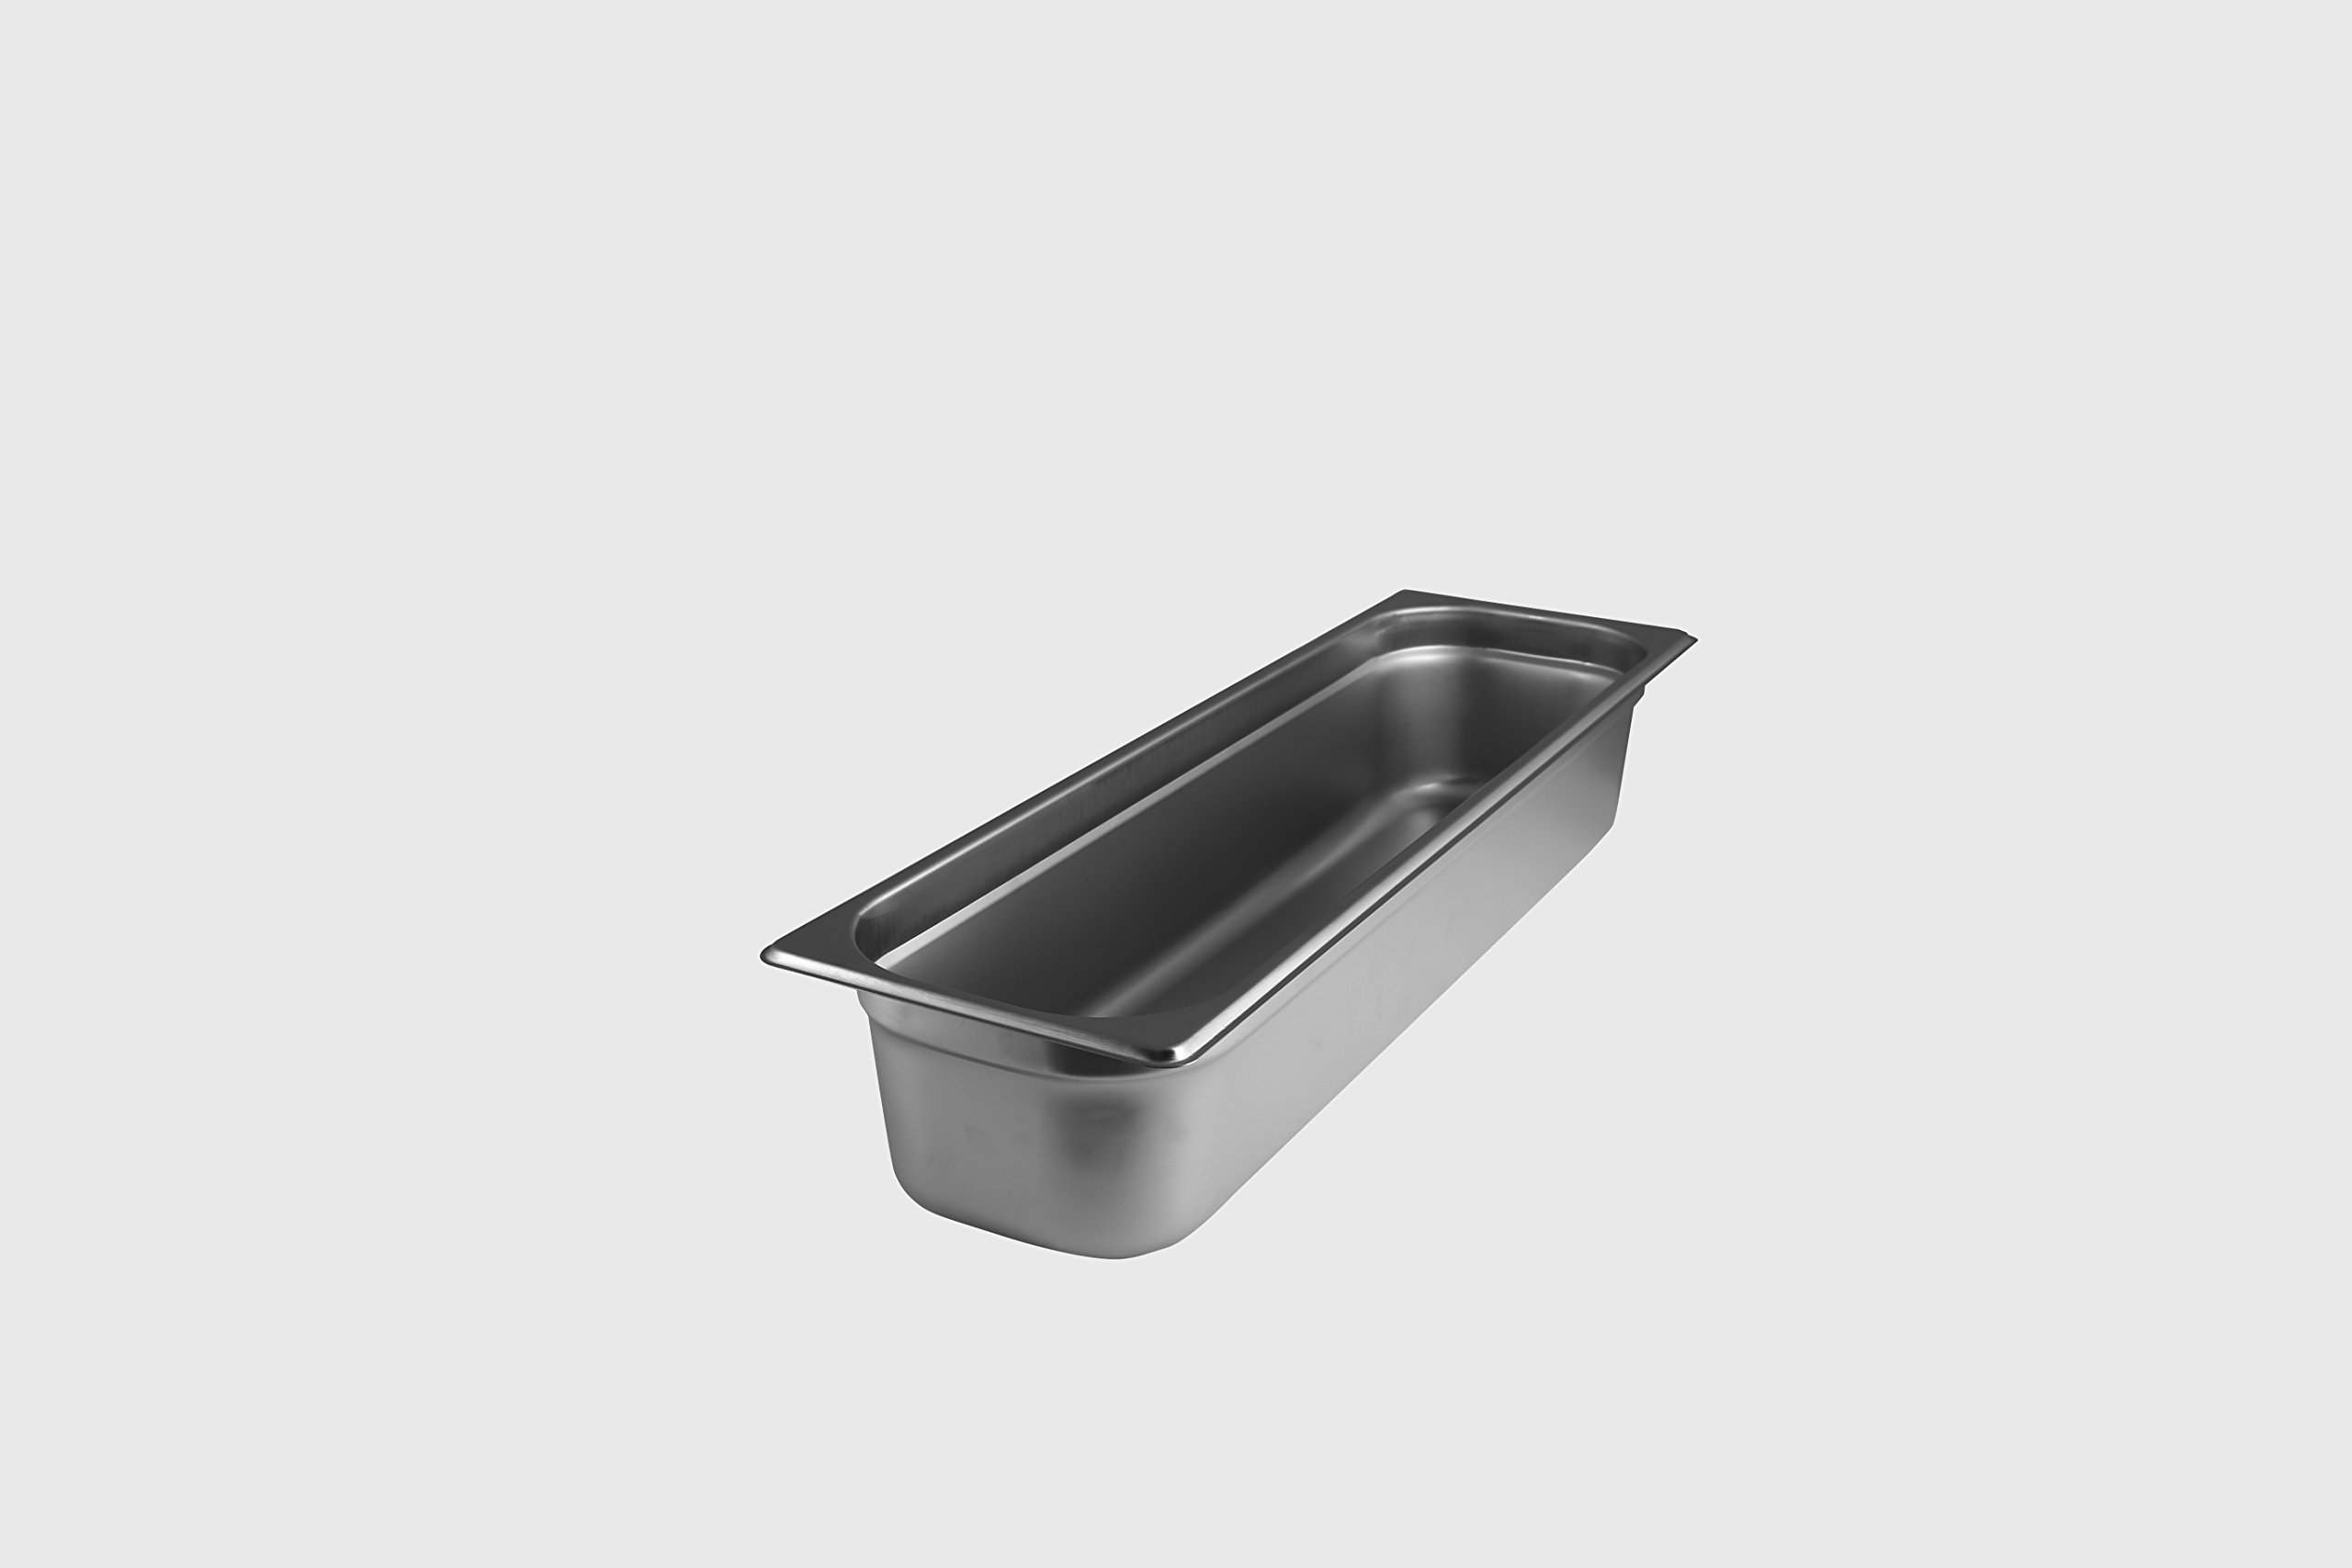 Steam Table Pan, Stainless Steel, 1/2 Size Long, STPHL224